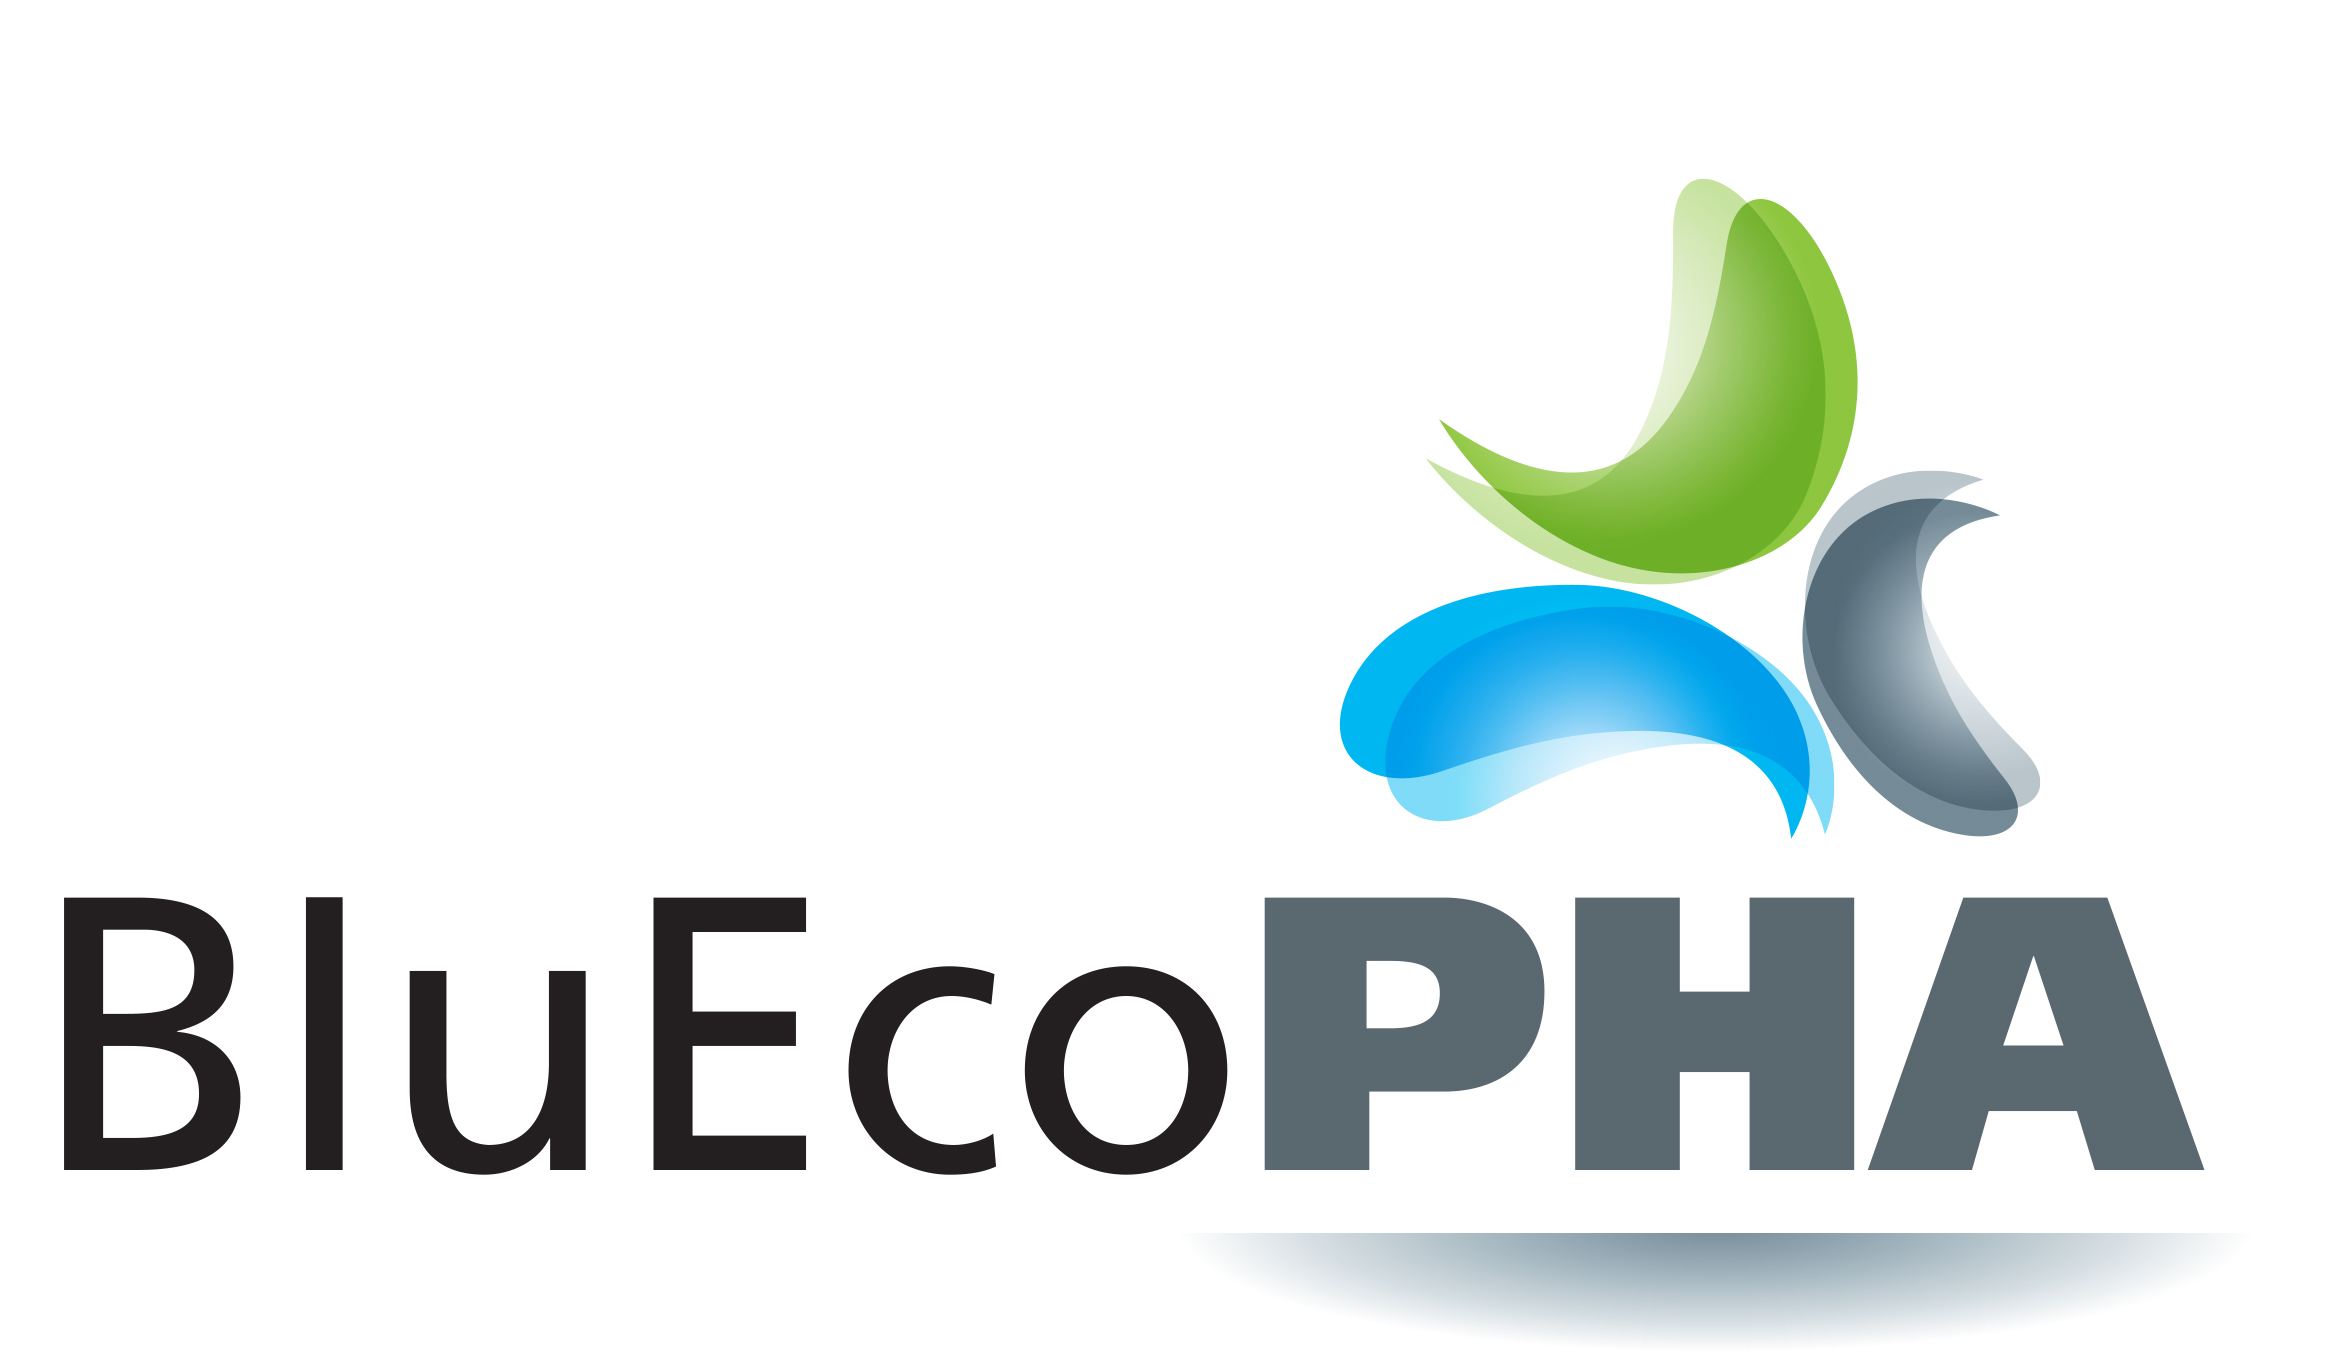 Launch of the Bluecopha project